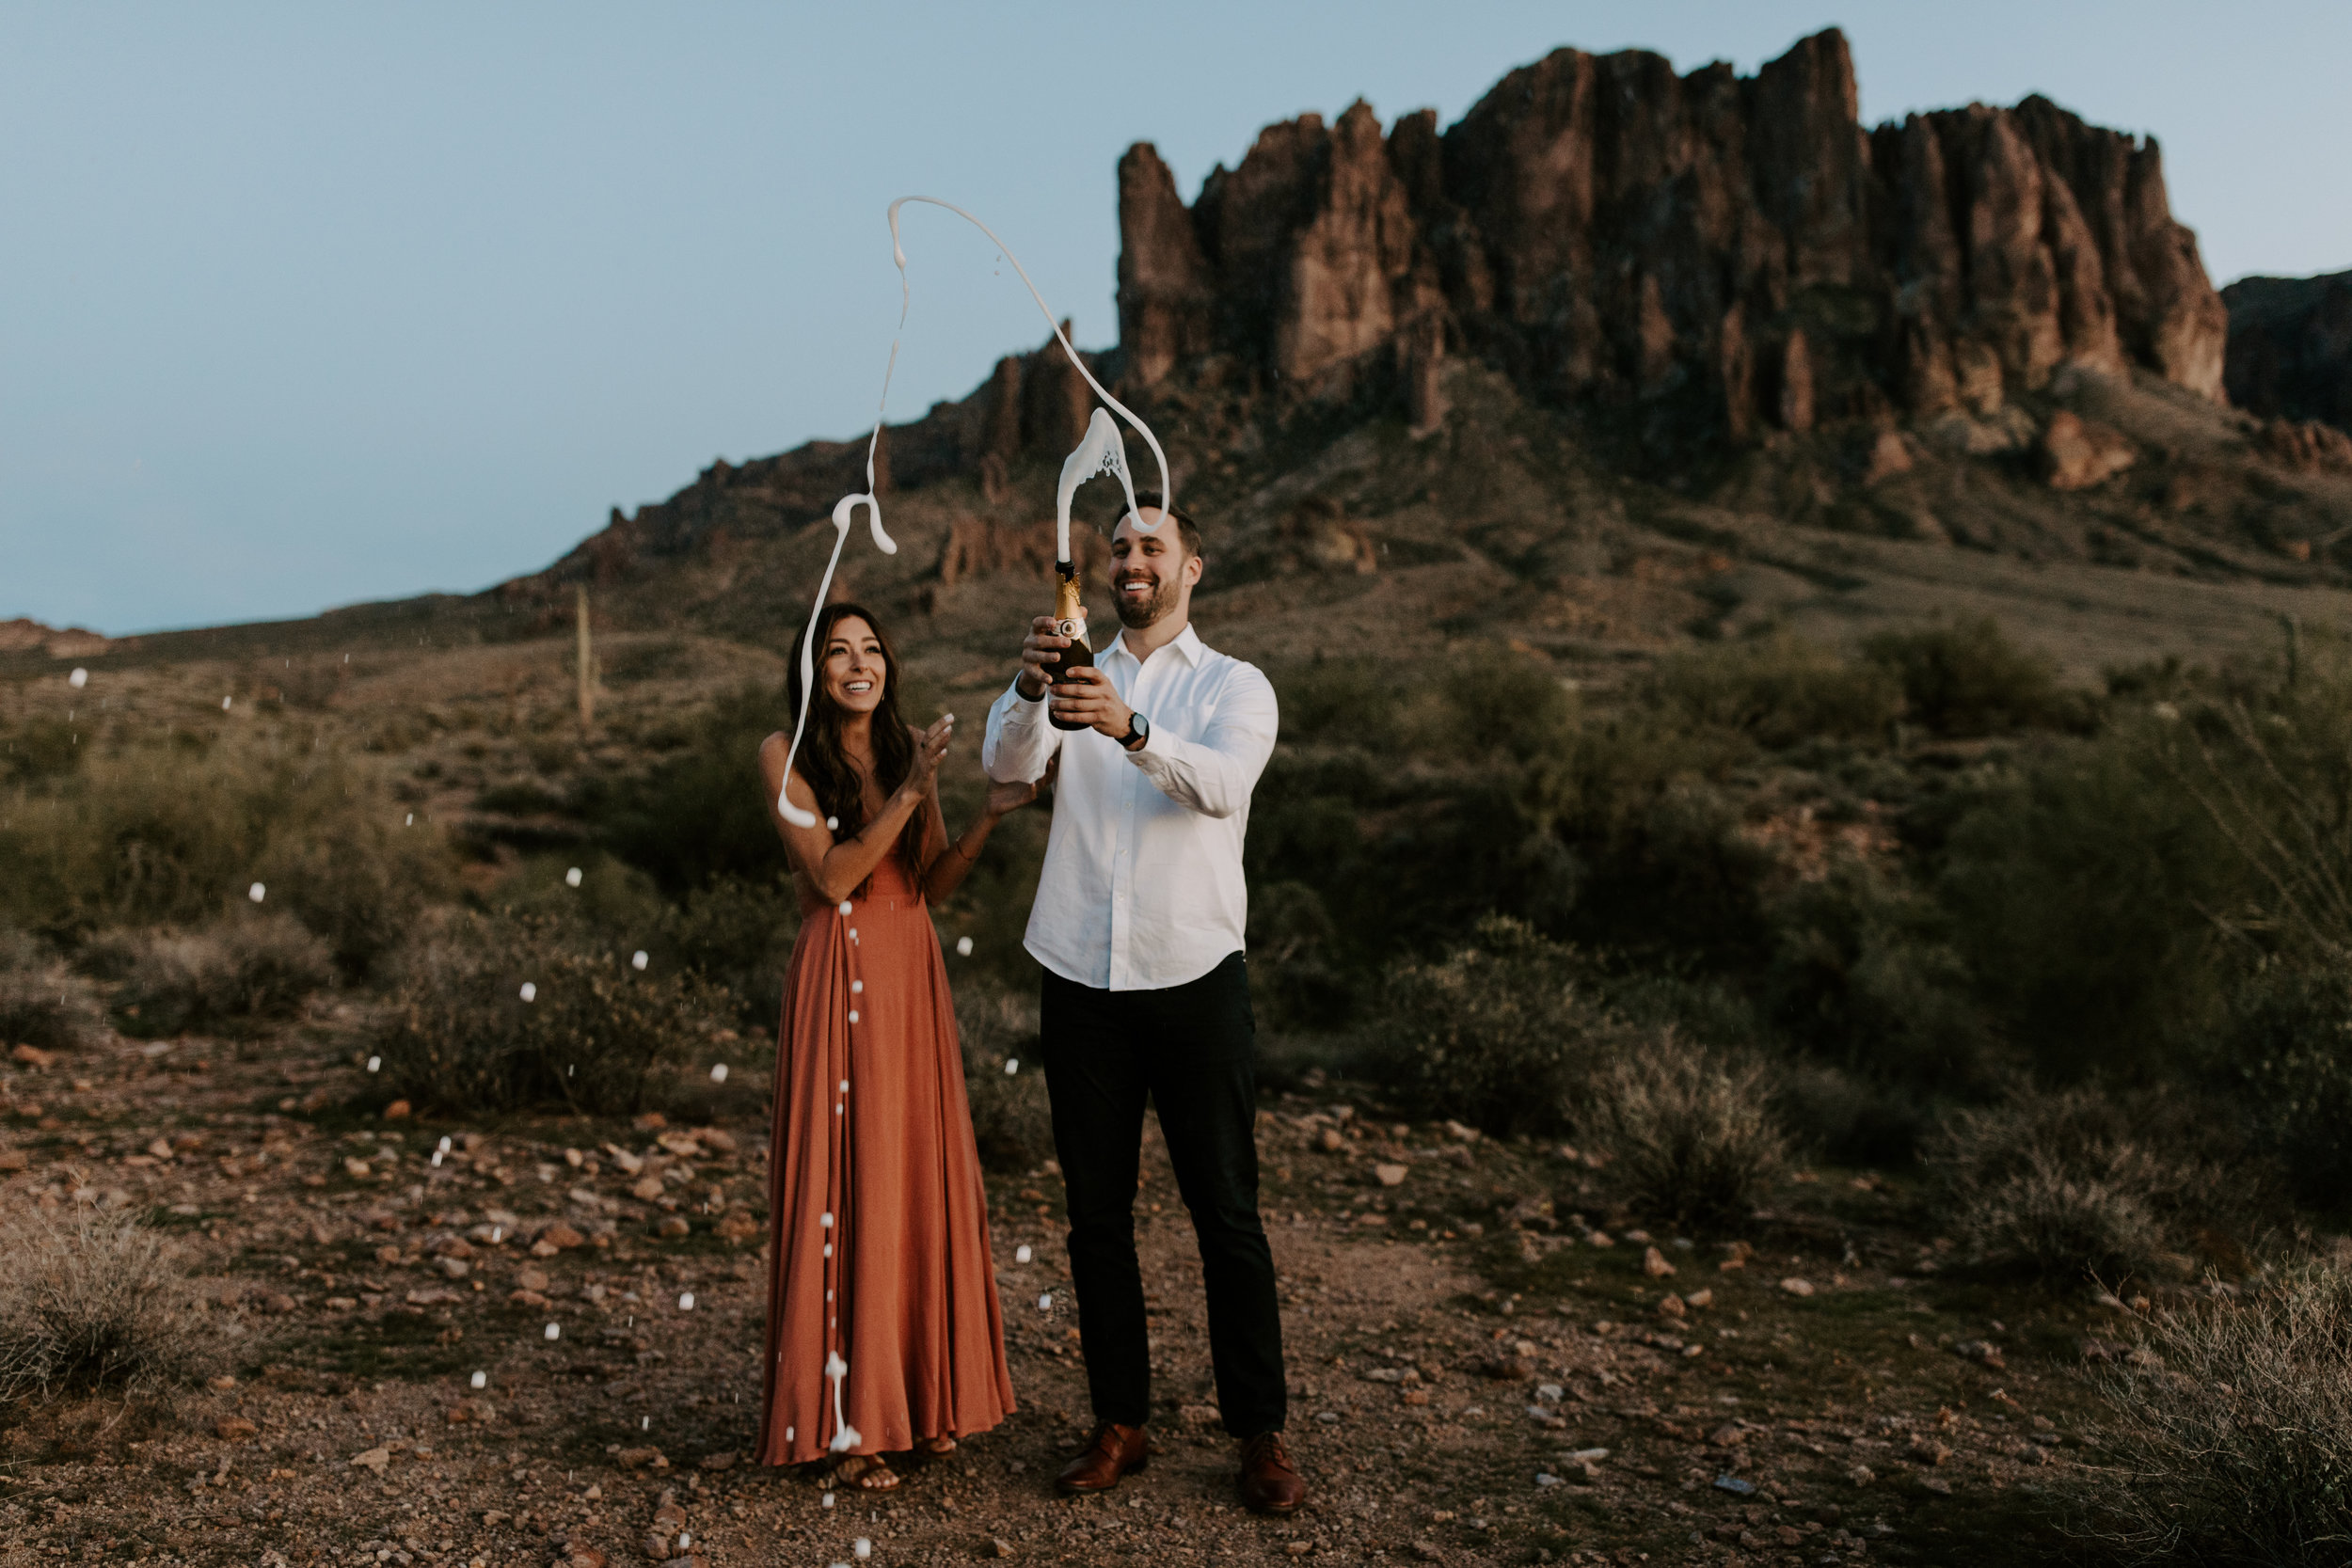 James and Kayla - Superstition Mountains